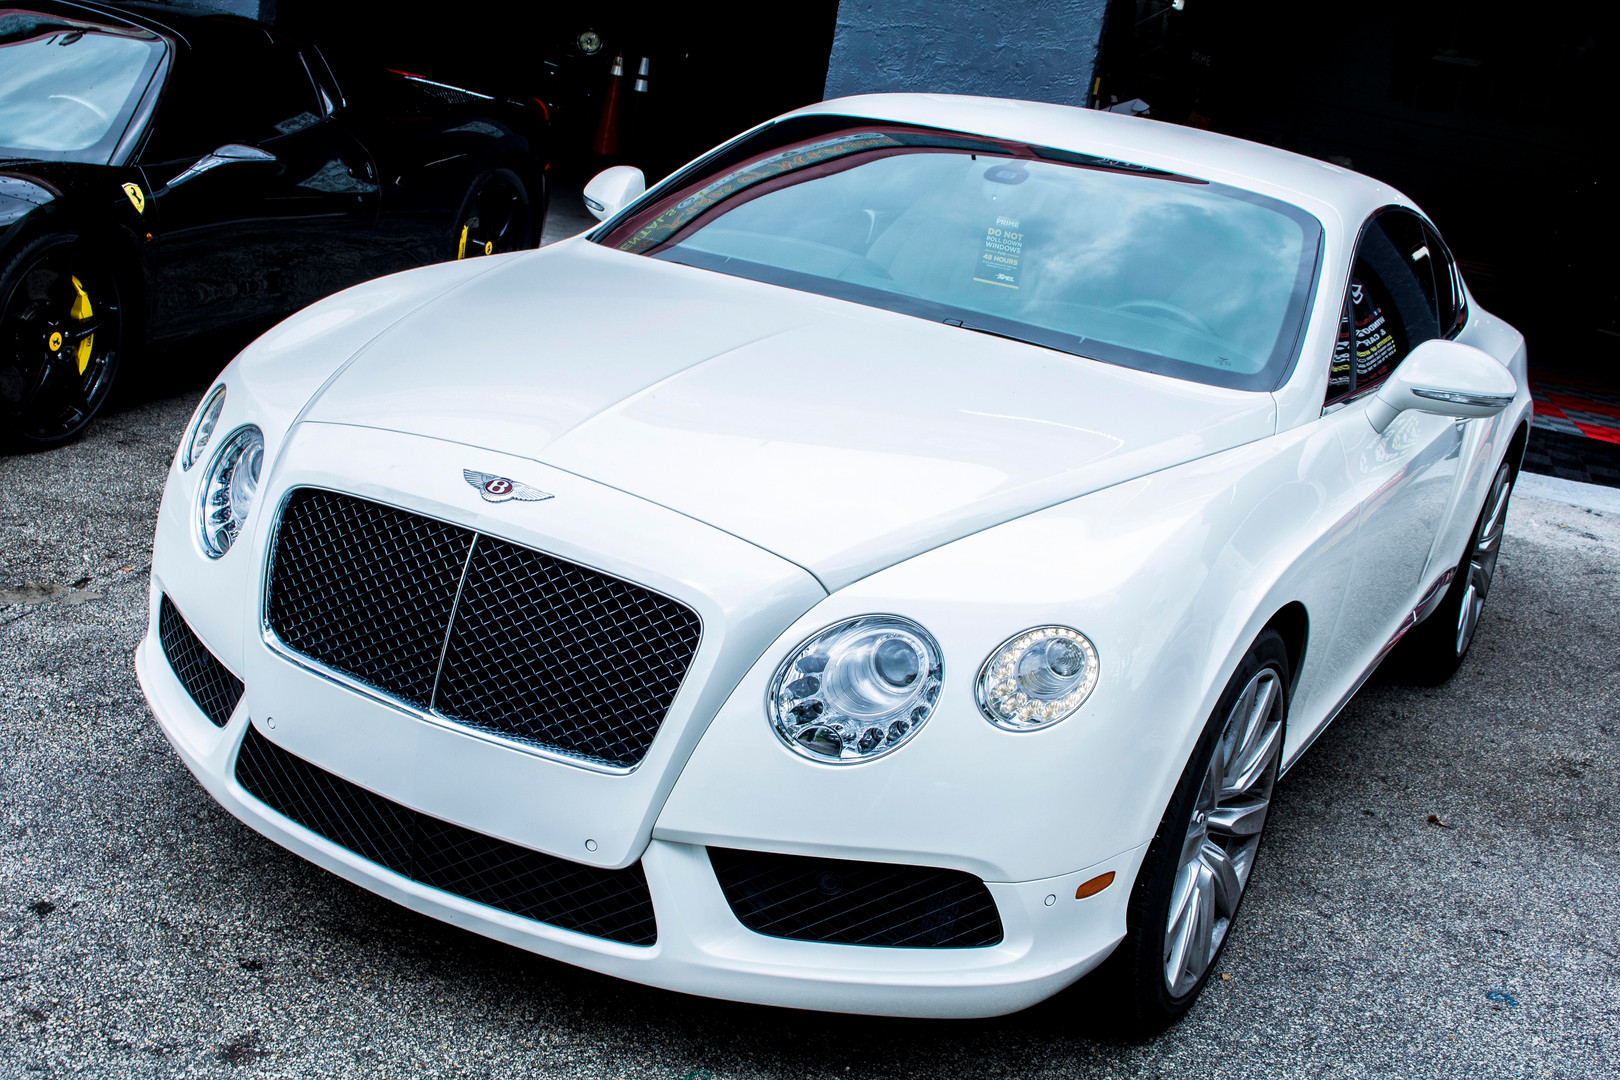 White Bentley Photographed by Jorge Alberto Perez  Miami Car photographer